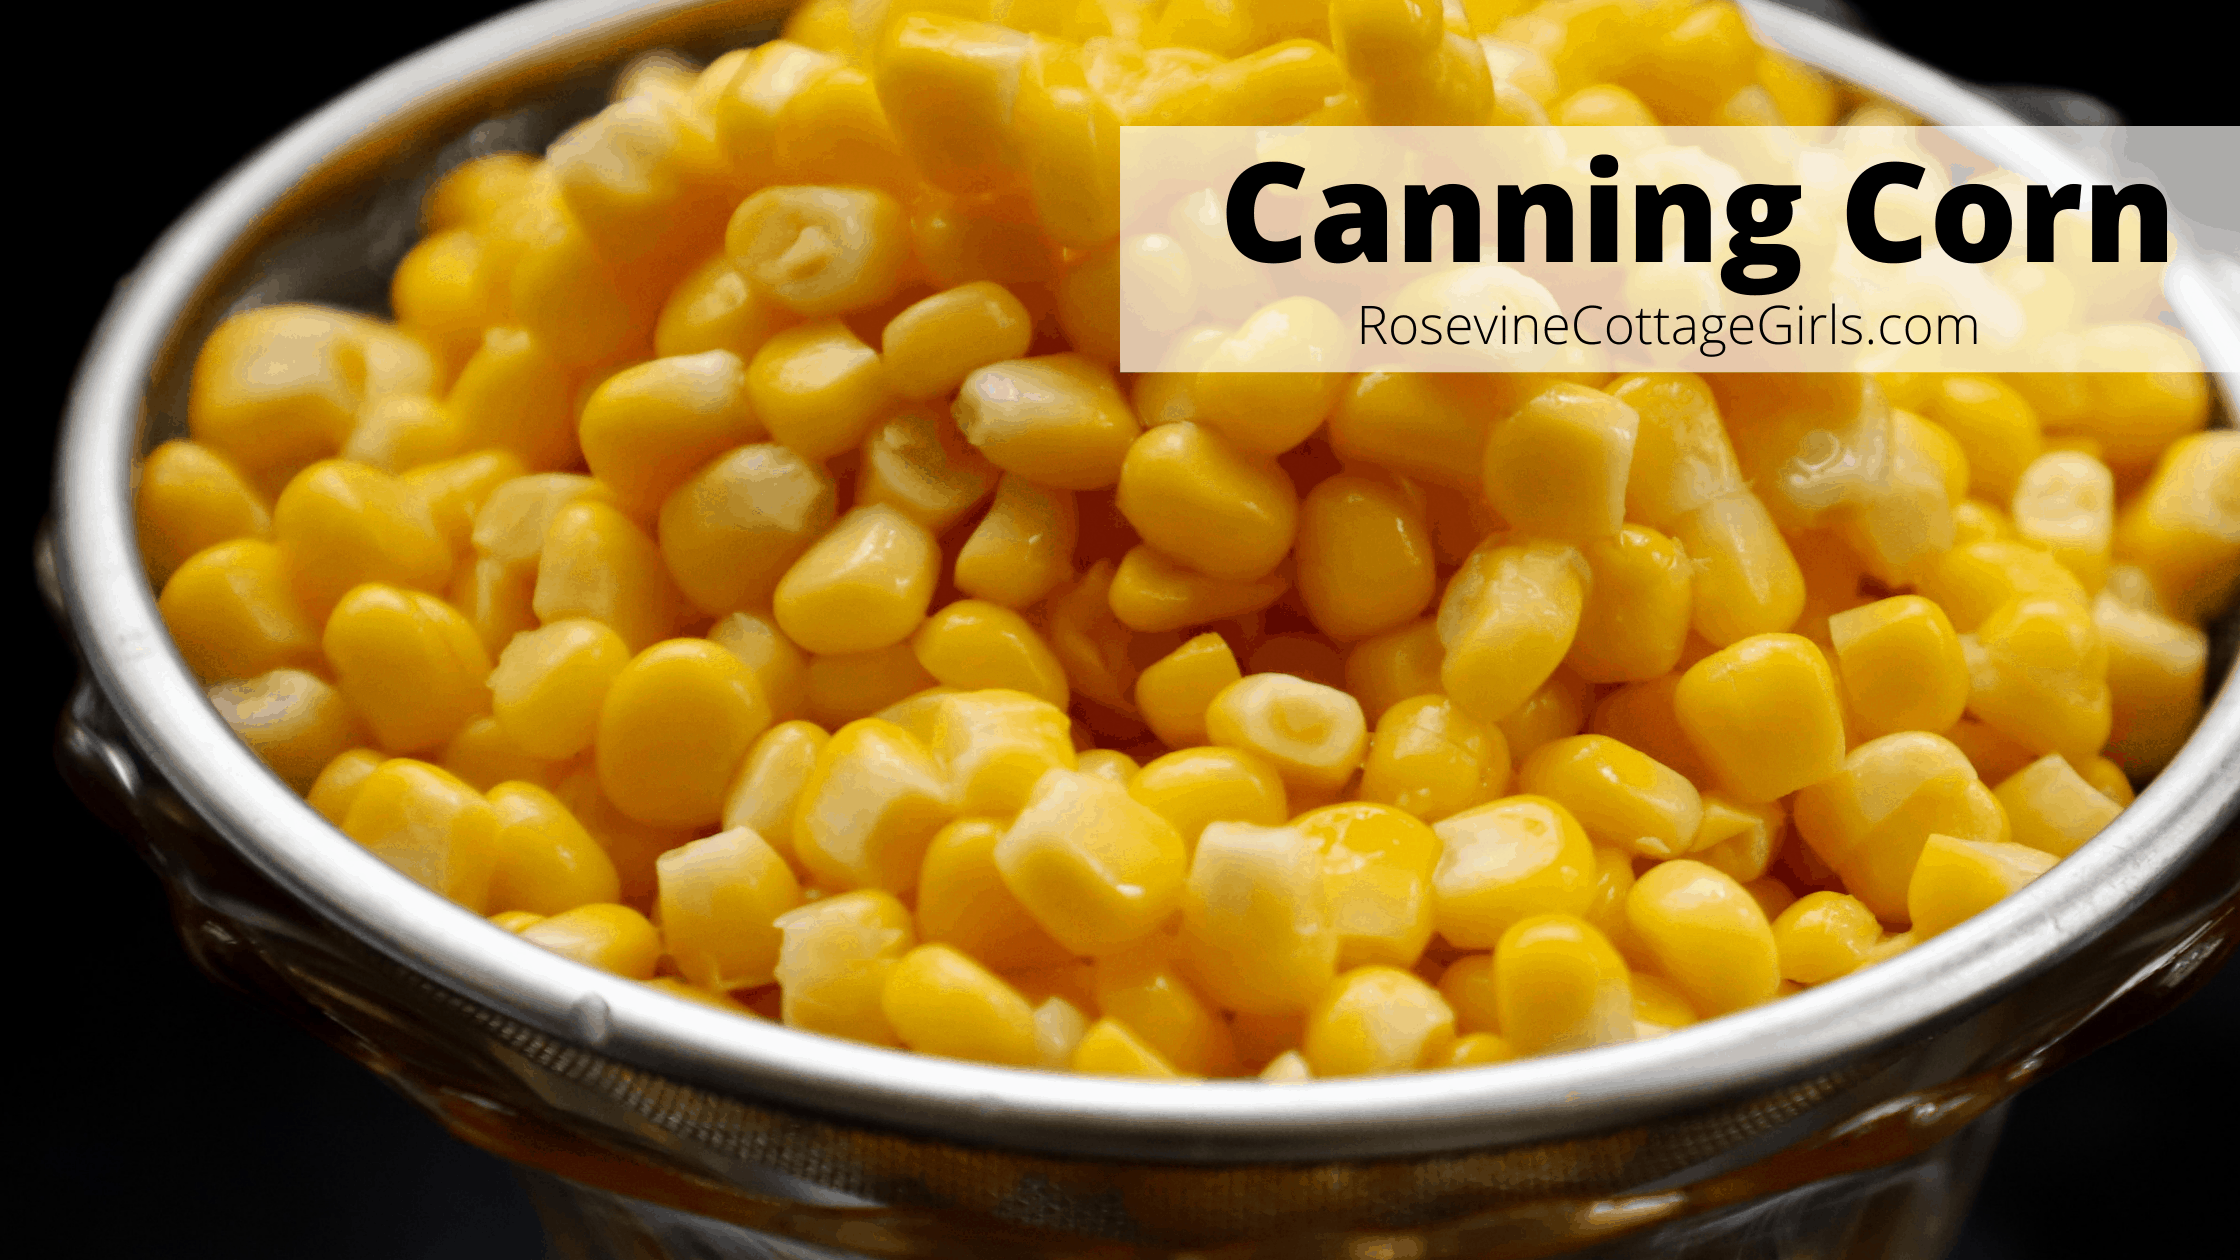 Whole kernel corn in a bowl | Text Canning Corn RosevineCottageGirls.com